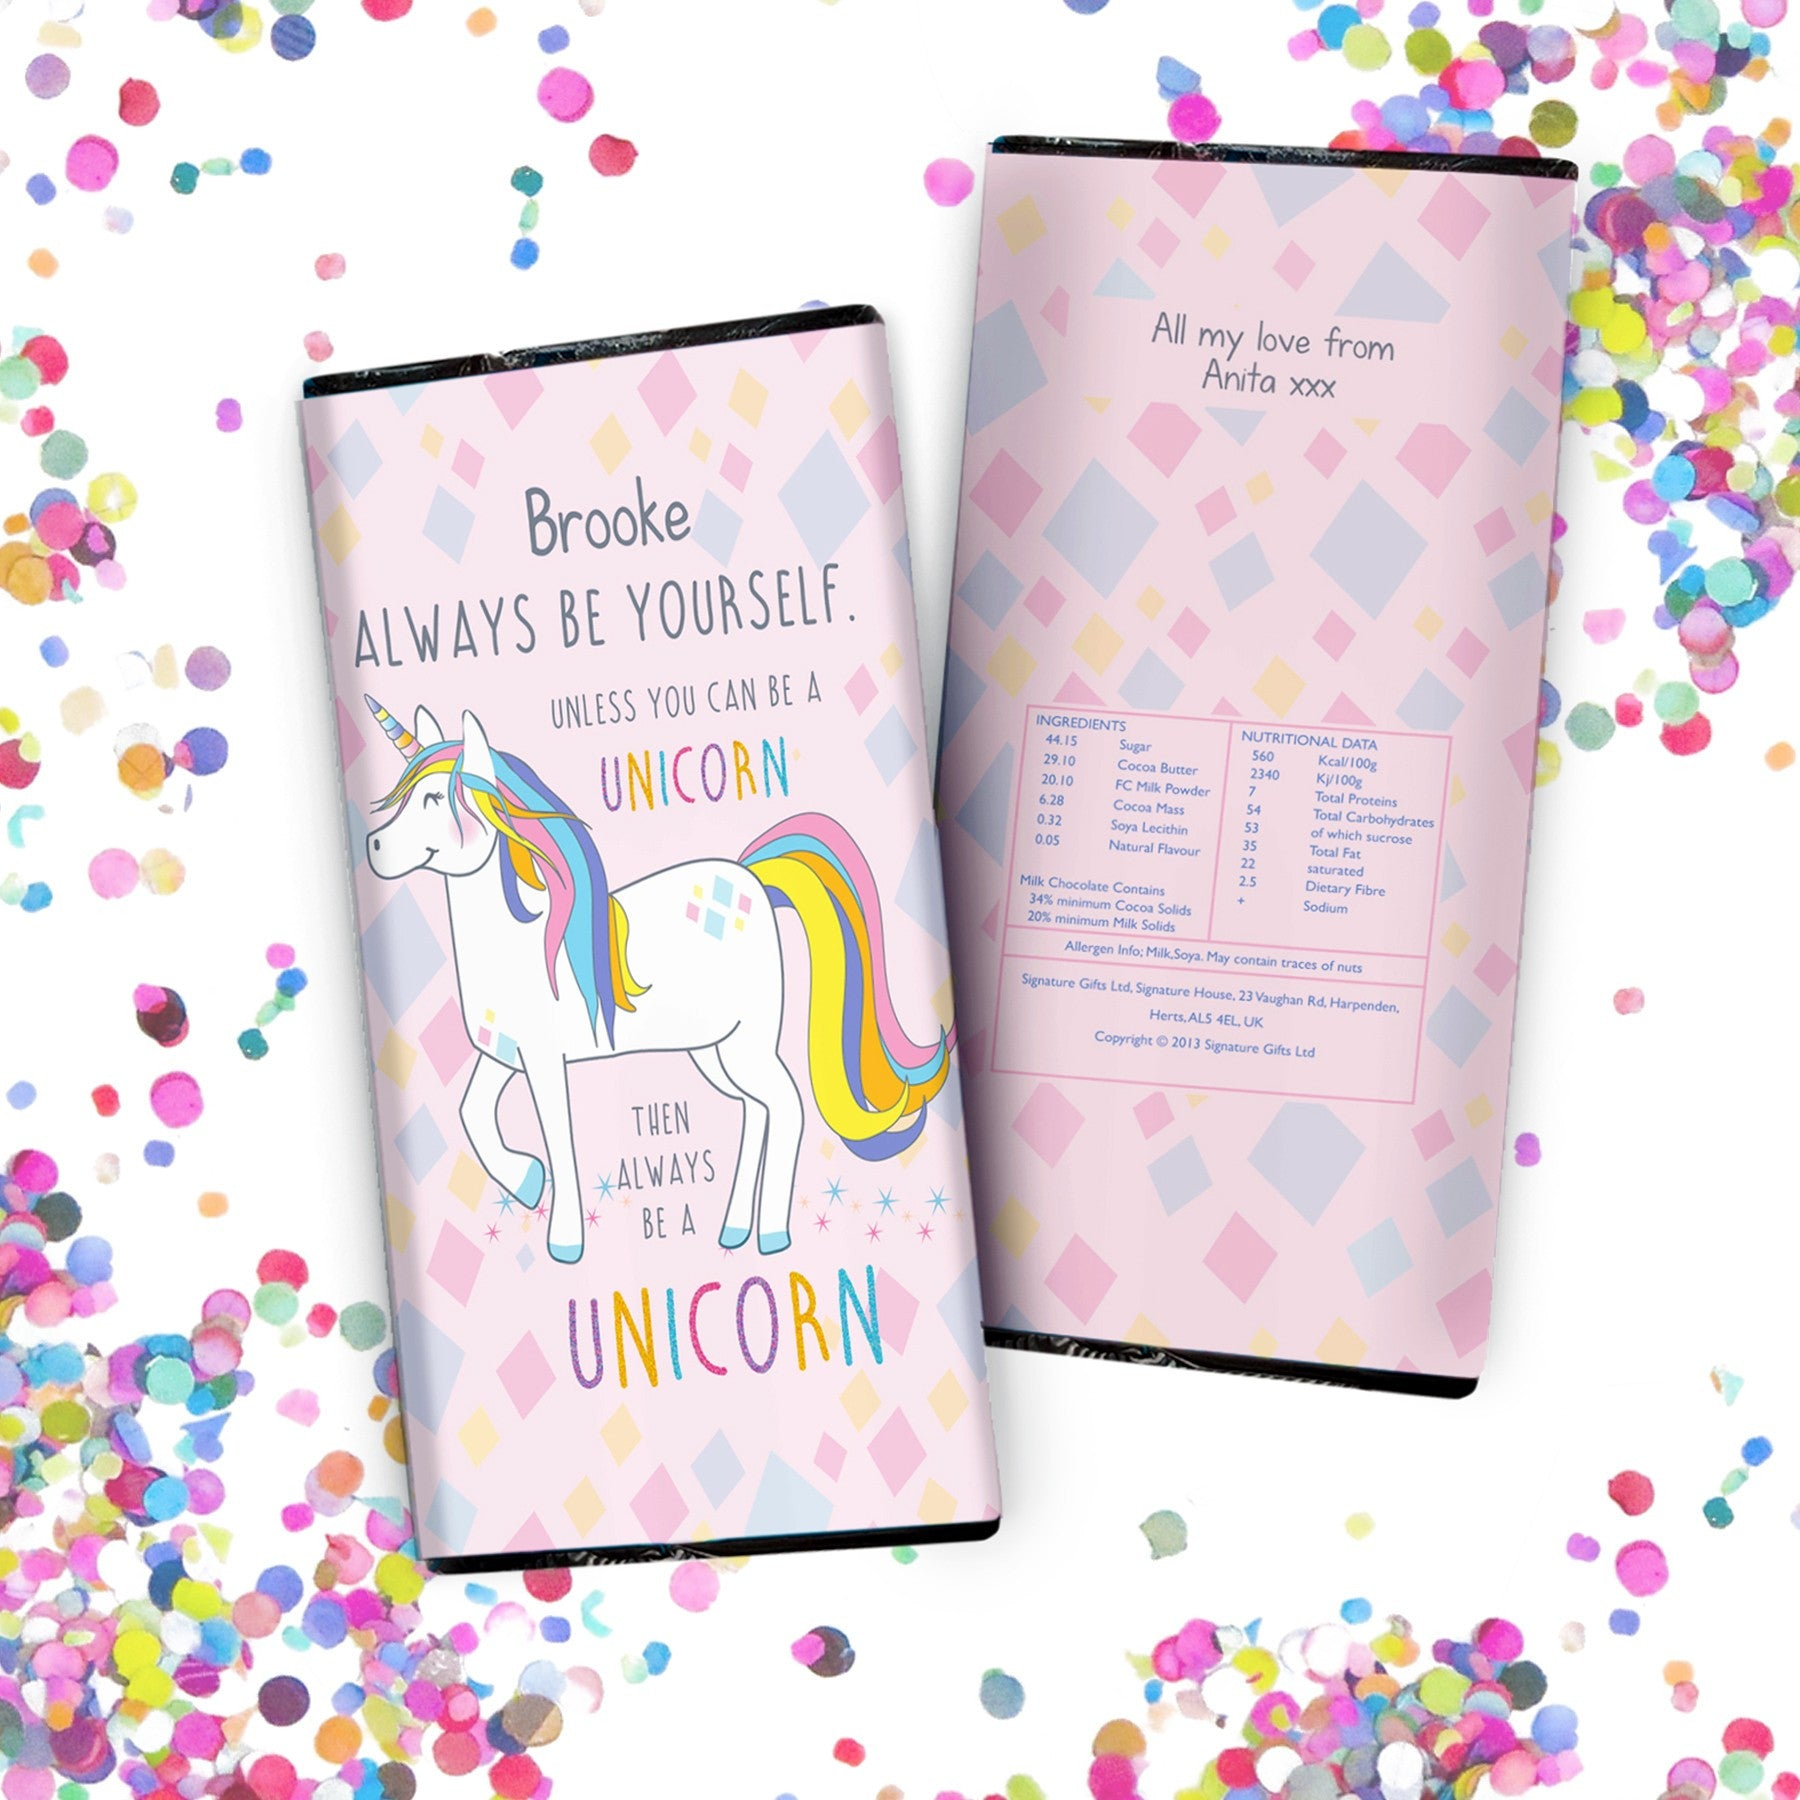 Always Be A Unicorn Chocolate Bar - A perfect gift for UNICORN lovers!, Sweets & Chocolate - Image 0